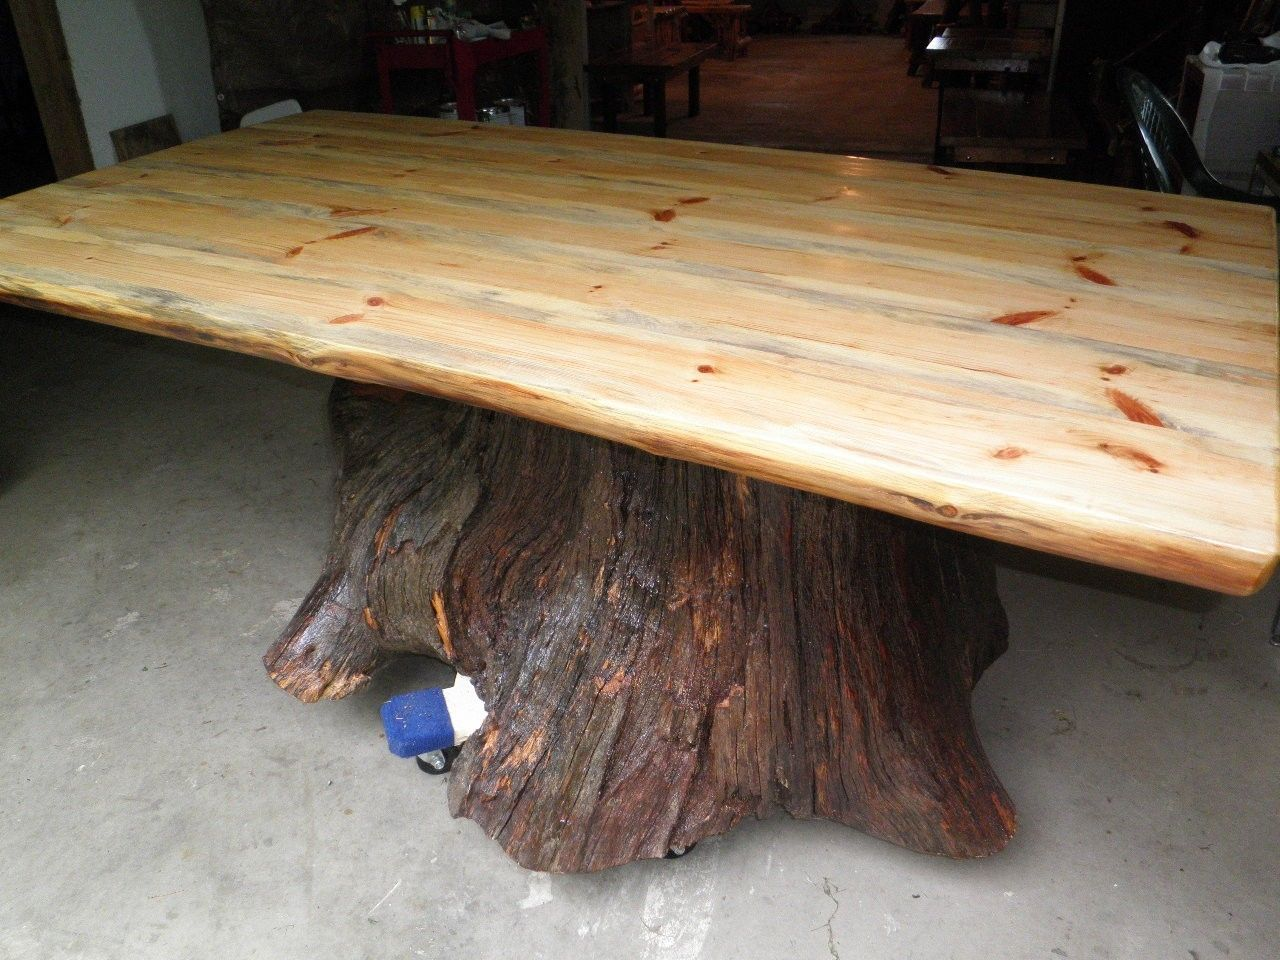 Custom made real oak tree trunk kitchen dining table one of our current projects